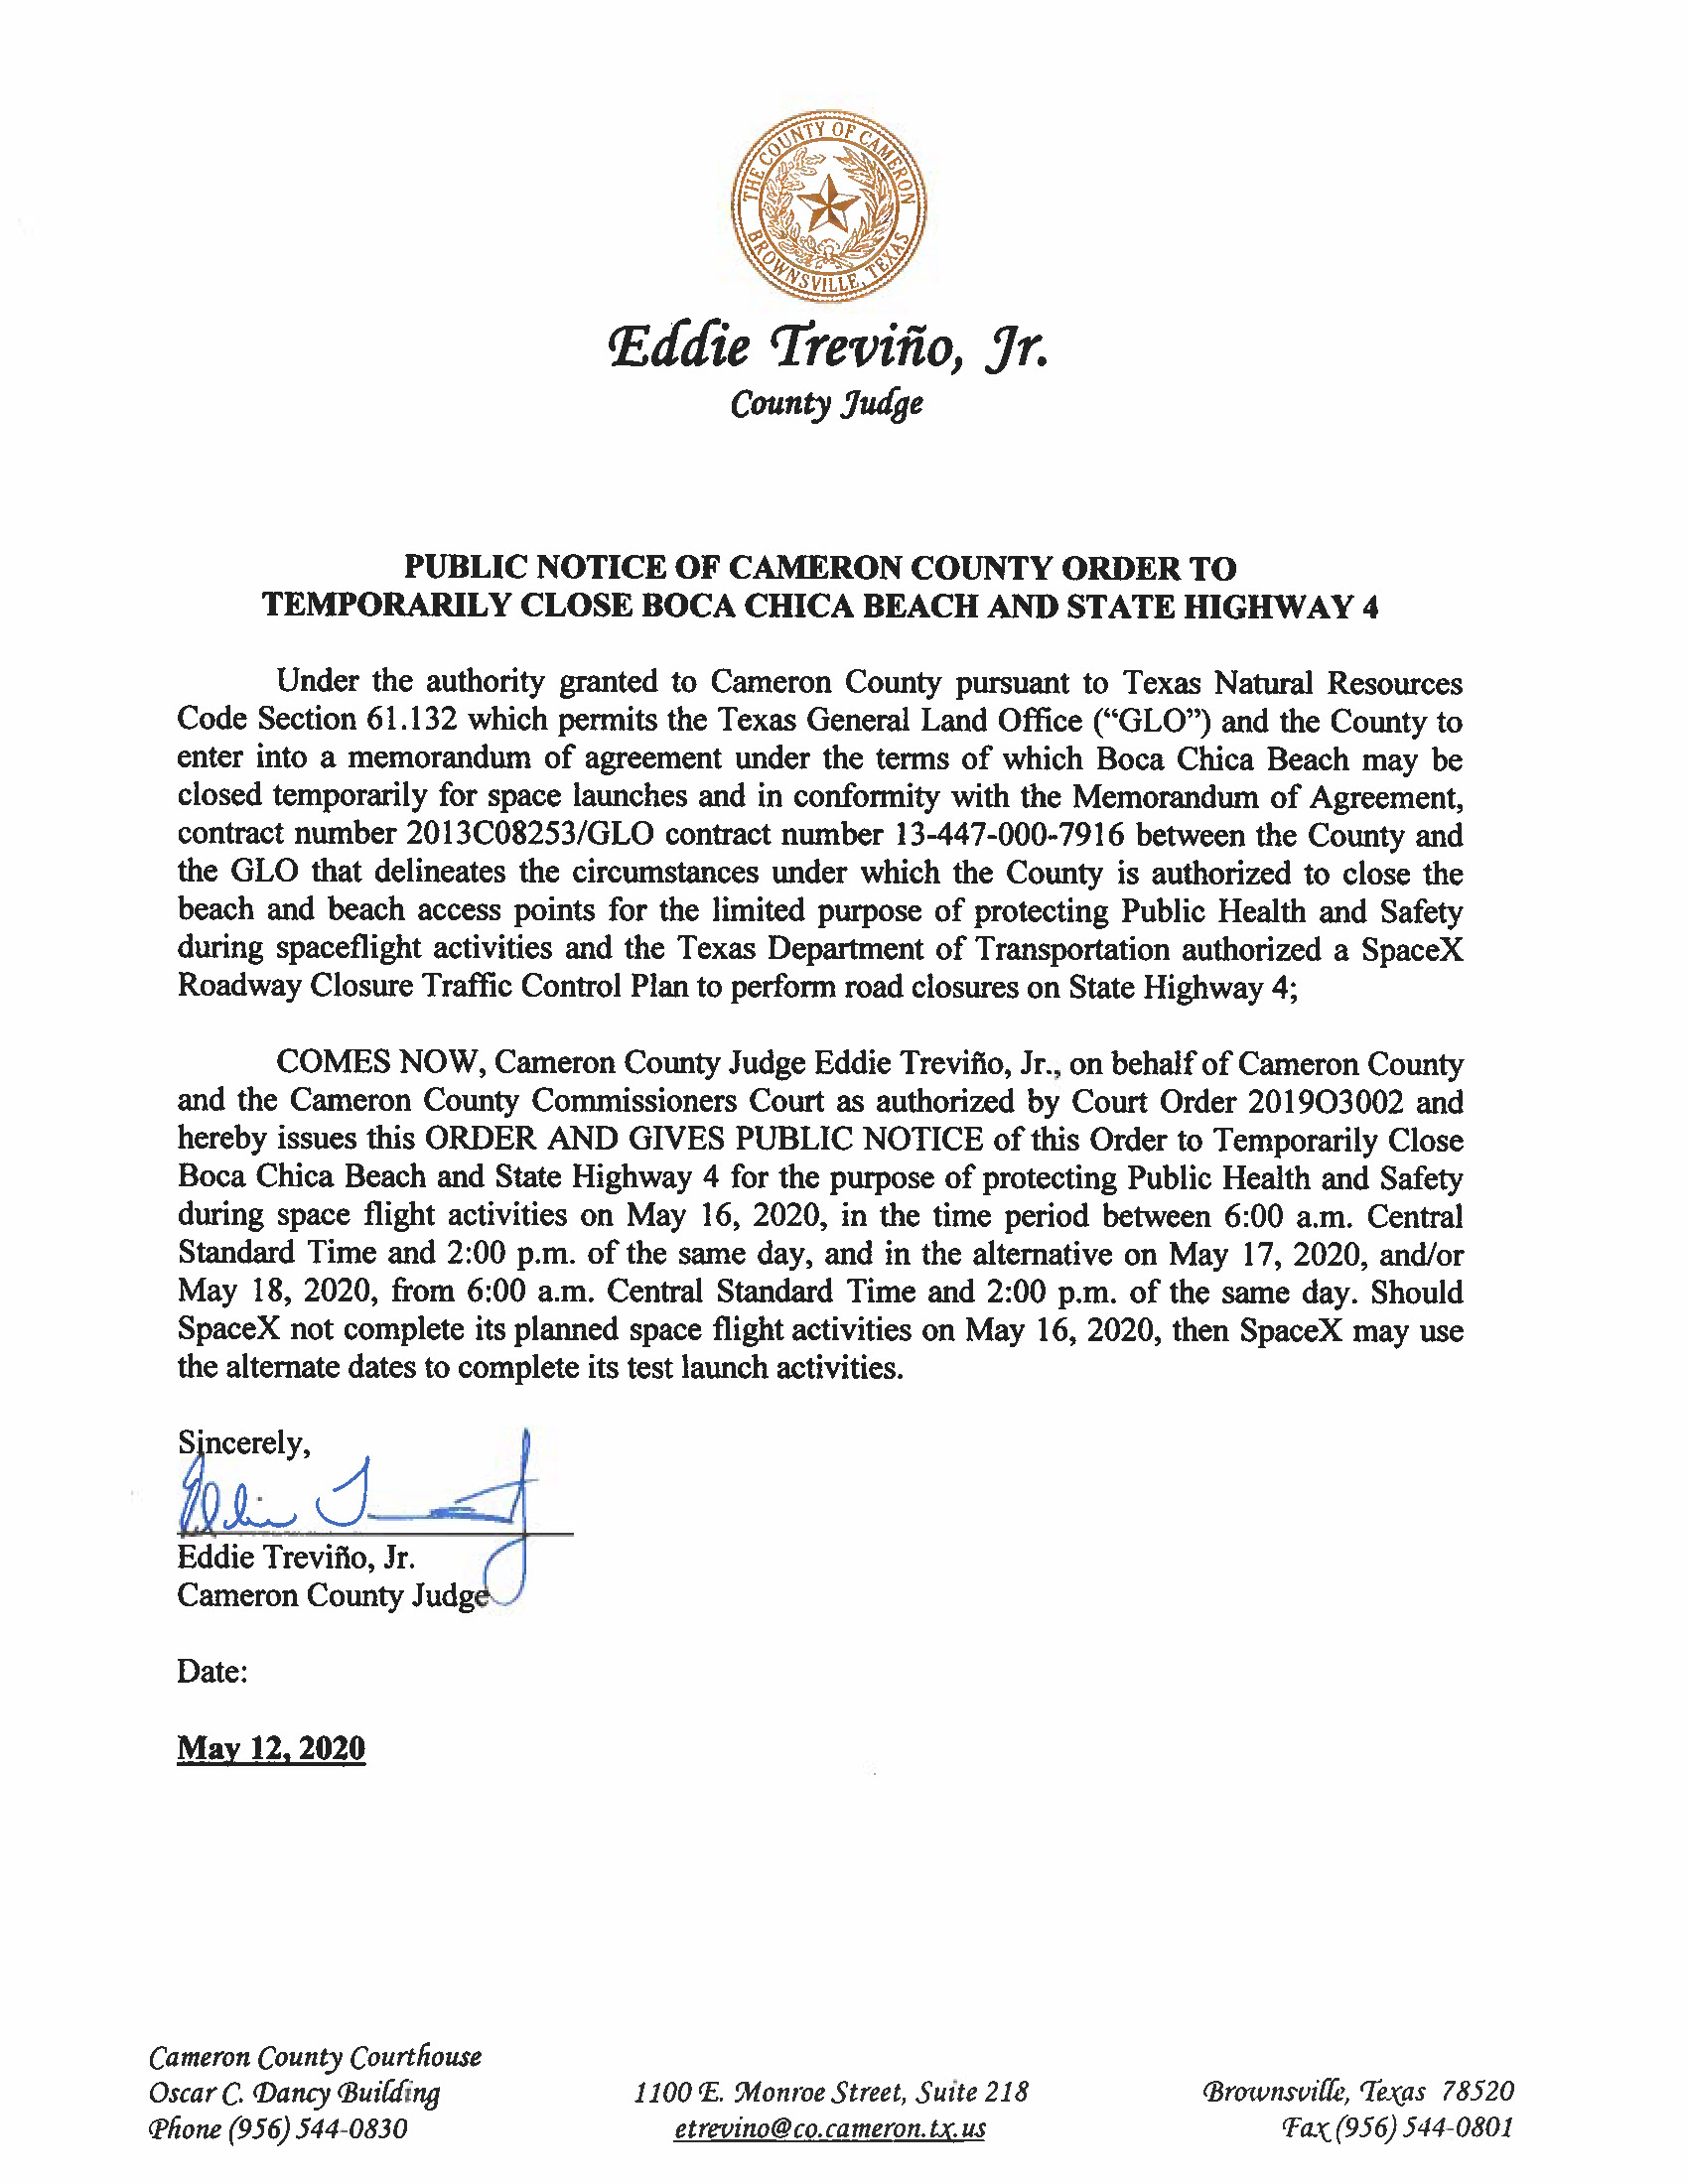 PUBLIC NOTICE OF CAMERON COUNTY ORDER TO TEMP. BEACH CLOSURE AND HWY. 05.16.20 Page 1